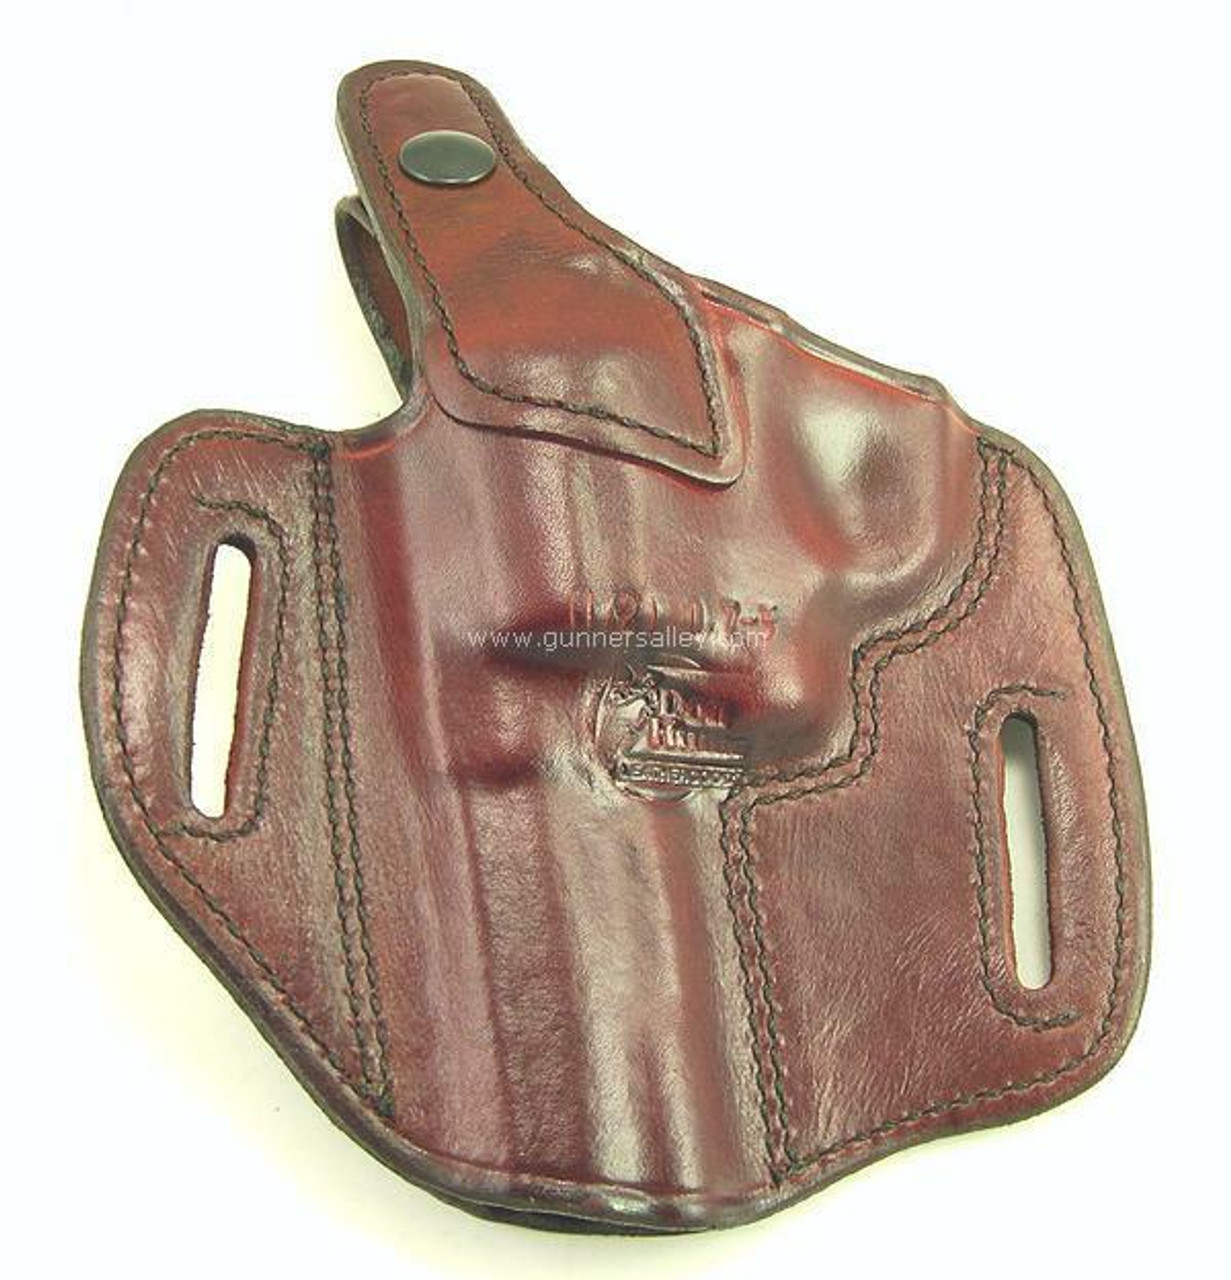 Shown in Saddle Brown for a S&W L Frame with 3 inch barrel - rear view